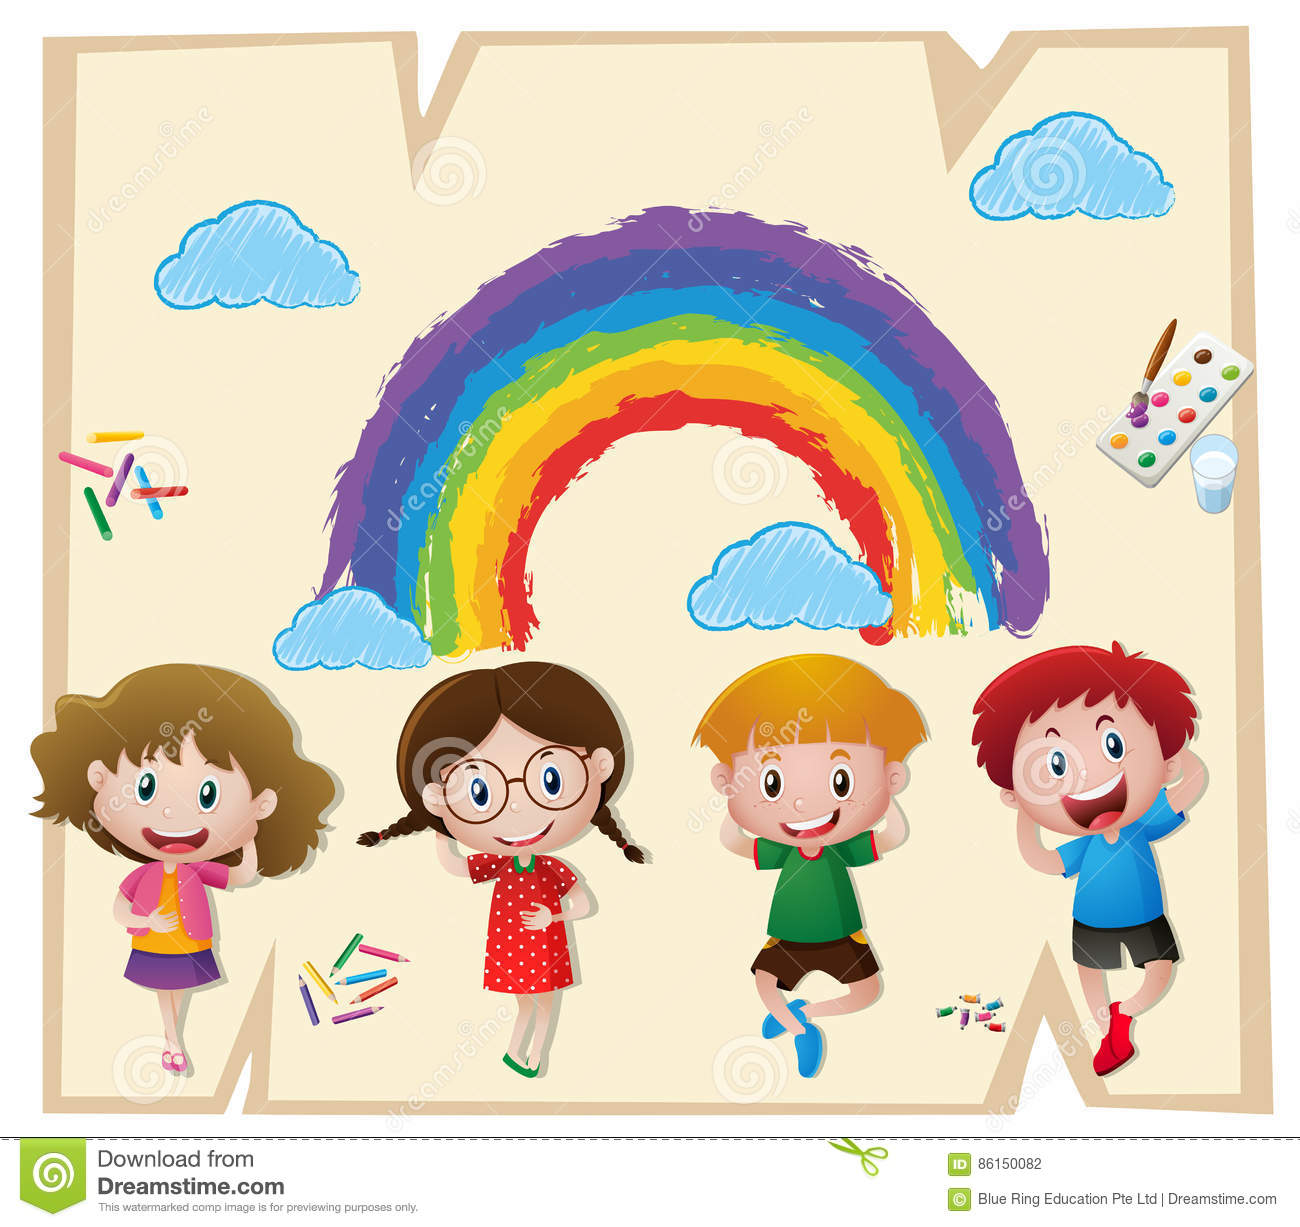 Children and colorful rainbow on paper